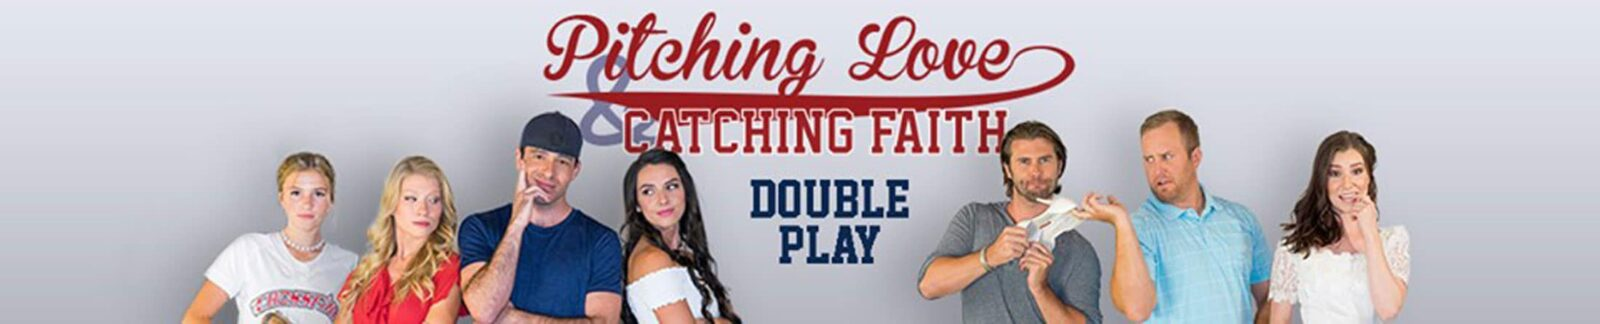 Pitching Love and Catching Faith: Double Play header